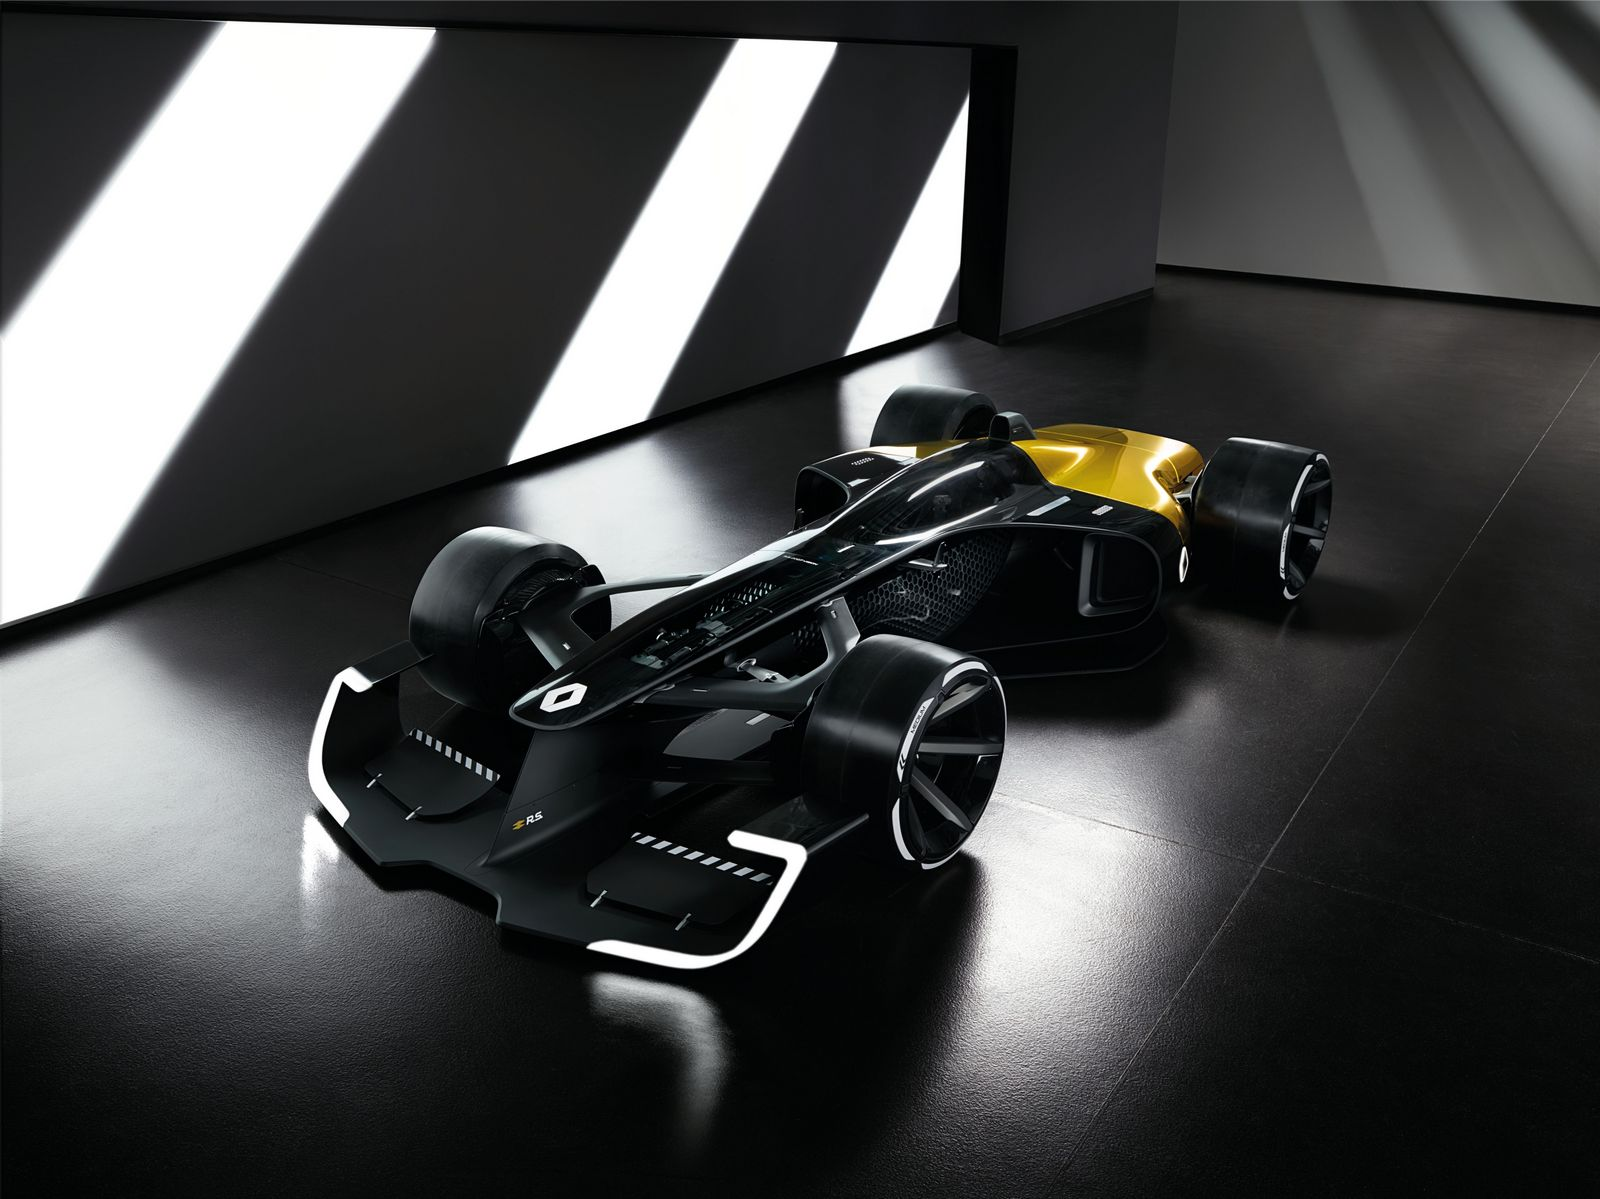 Renault RS 2027 Vision concept (2)